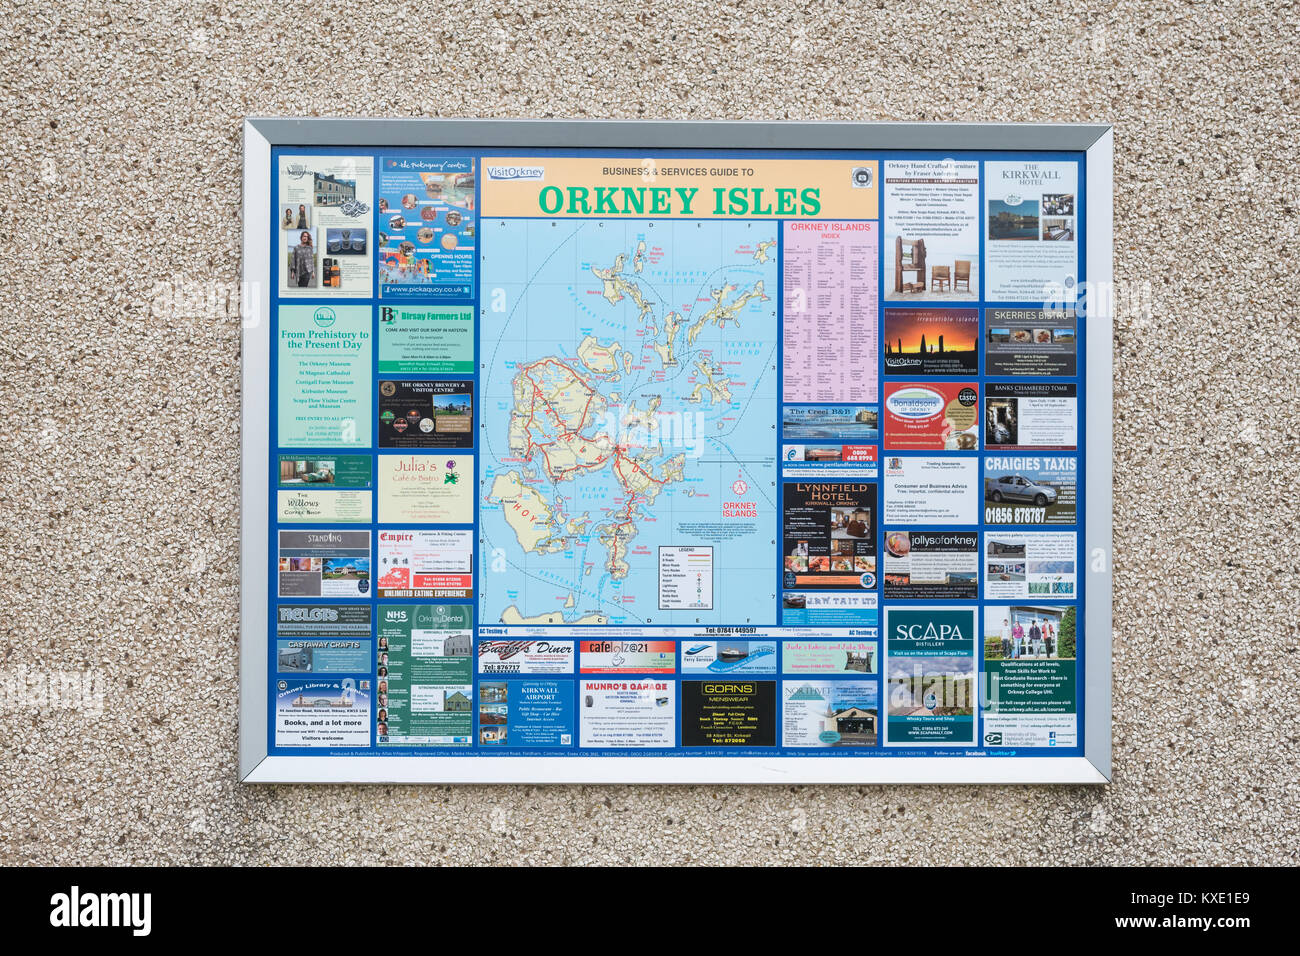 Infopoint of the Orkney Isles - mapping and information point produced by Atlas UK Ltd - Stock Image